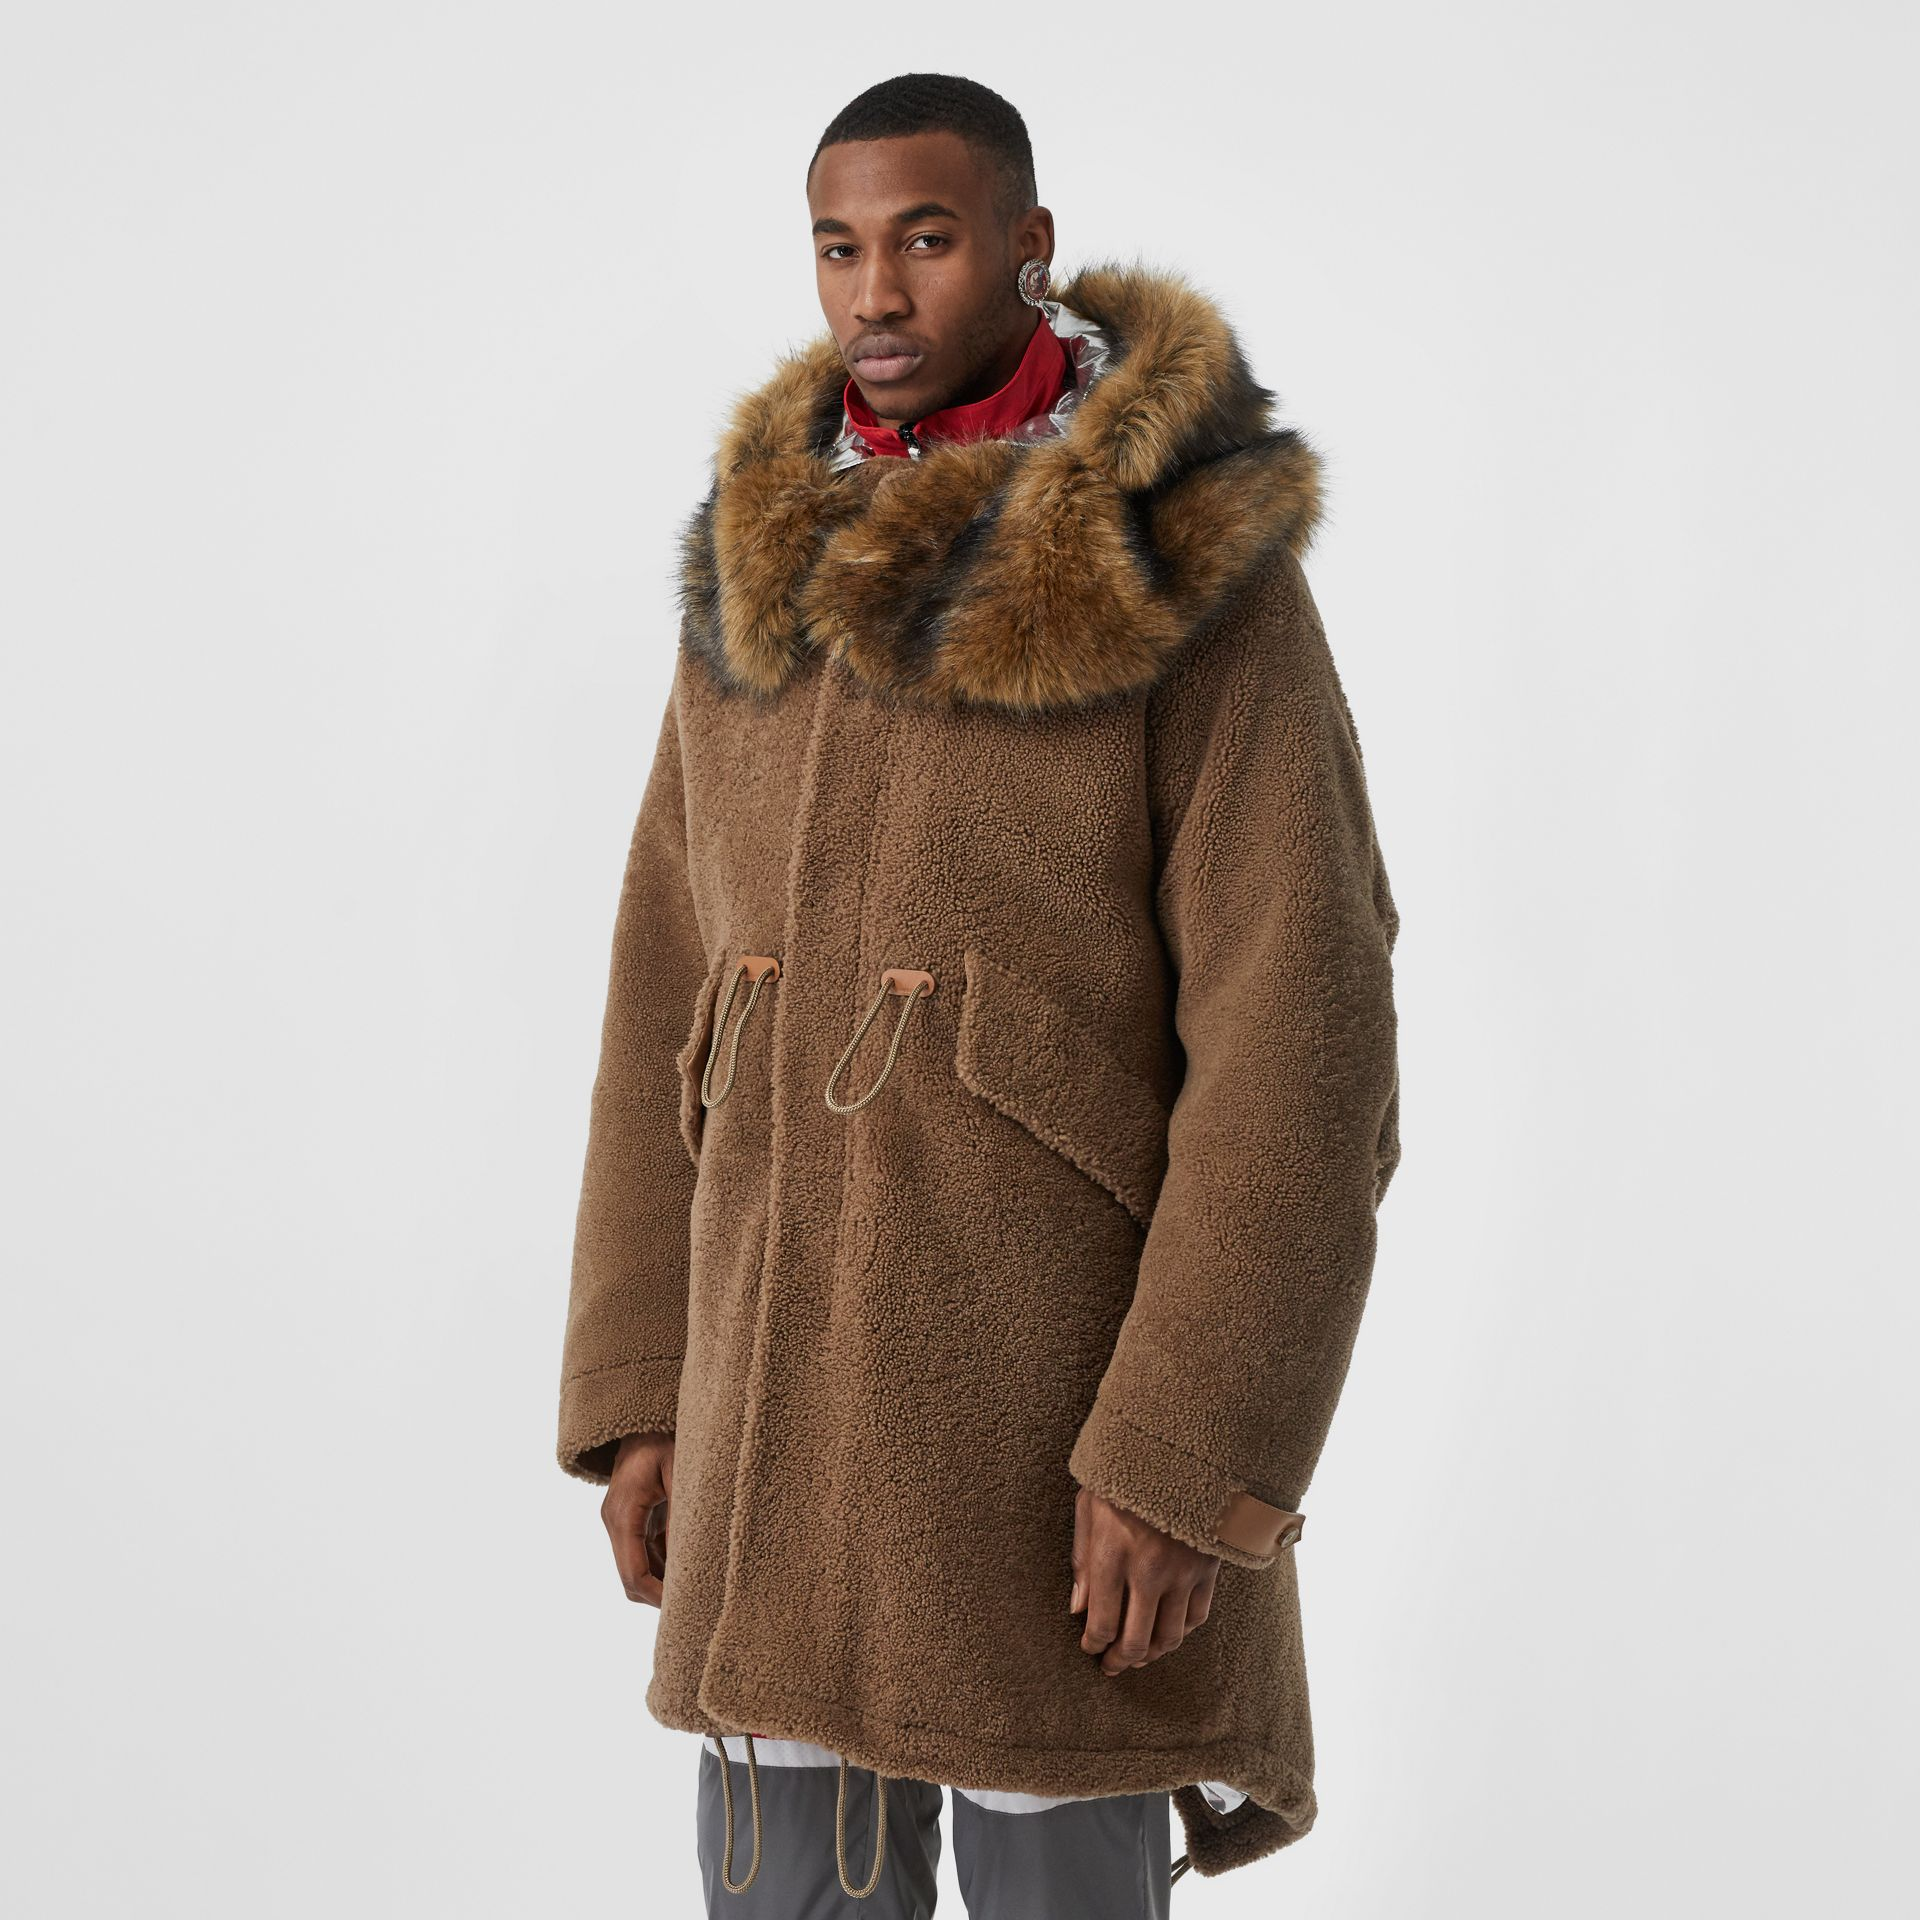 Shearling Parka with Detachable Hood and Jacket in Pale Coffee - Men | Burberry - gallery image 5